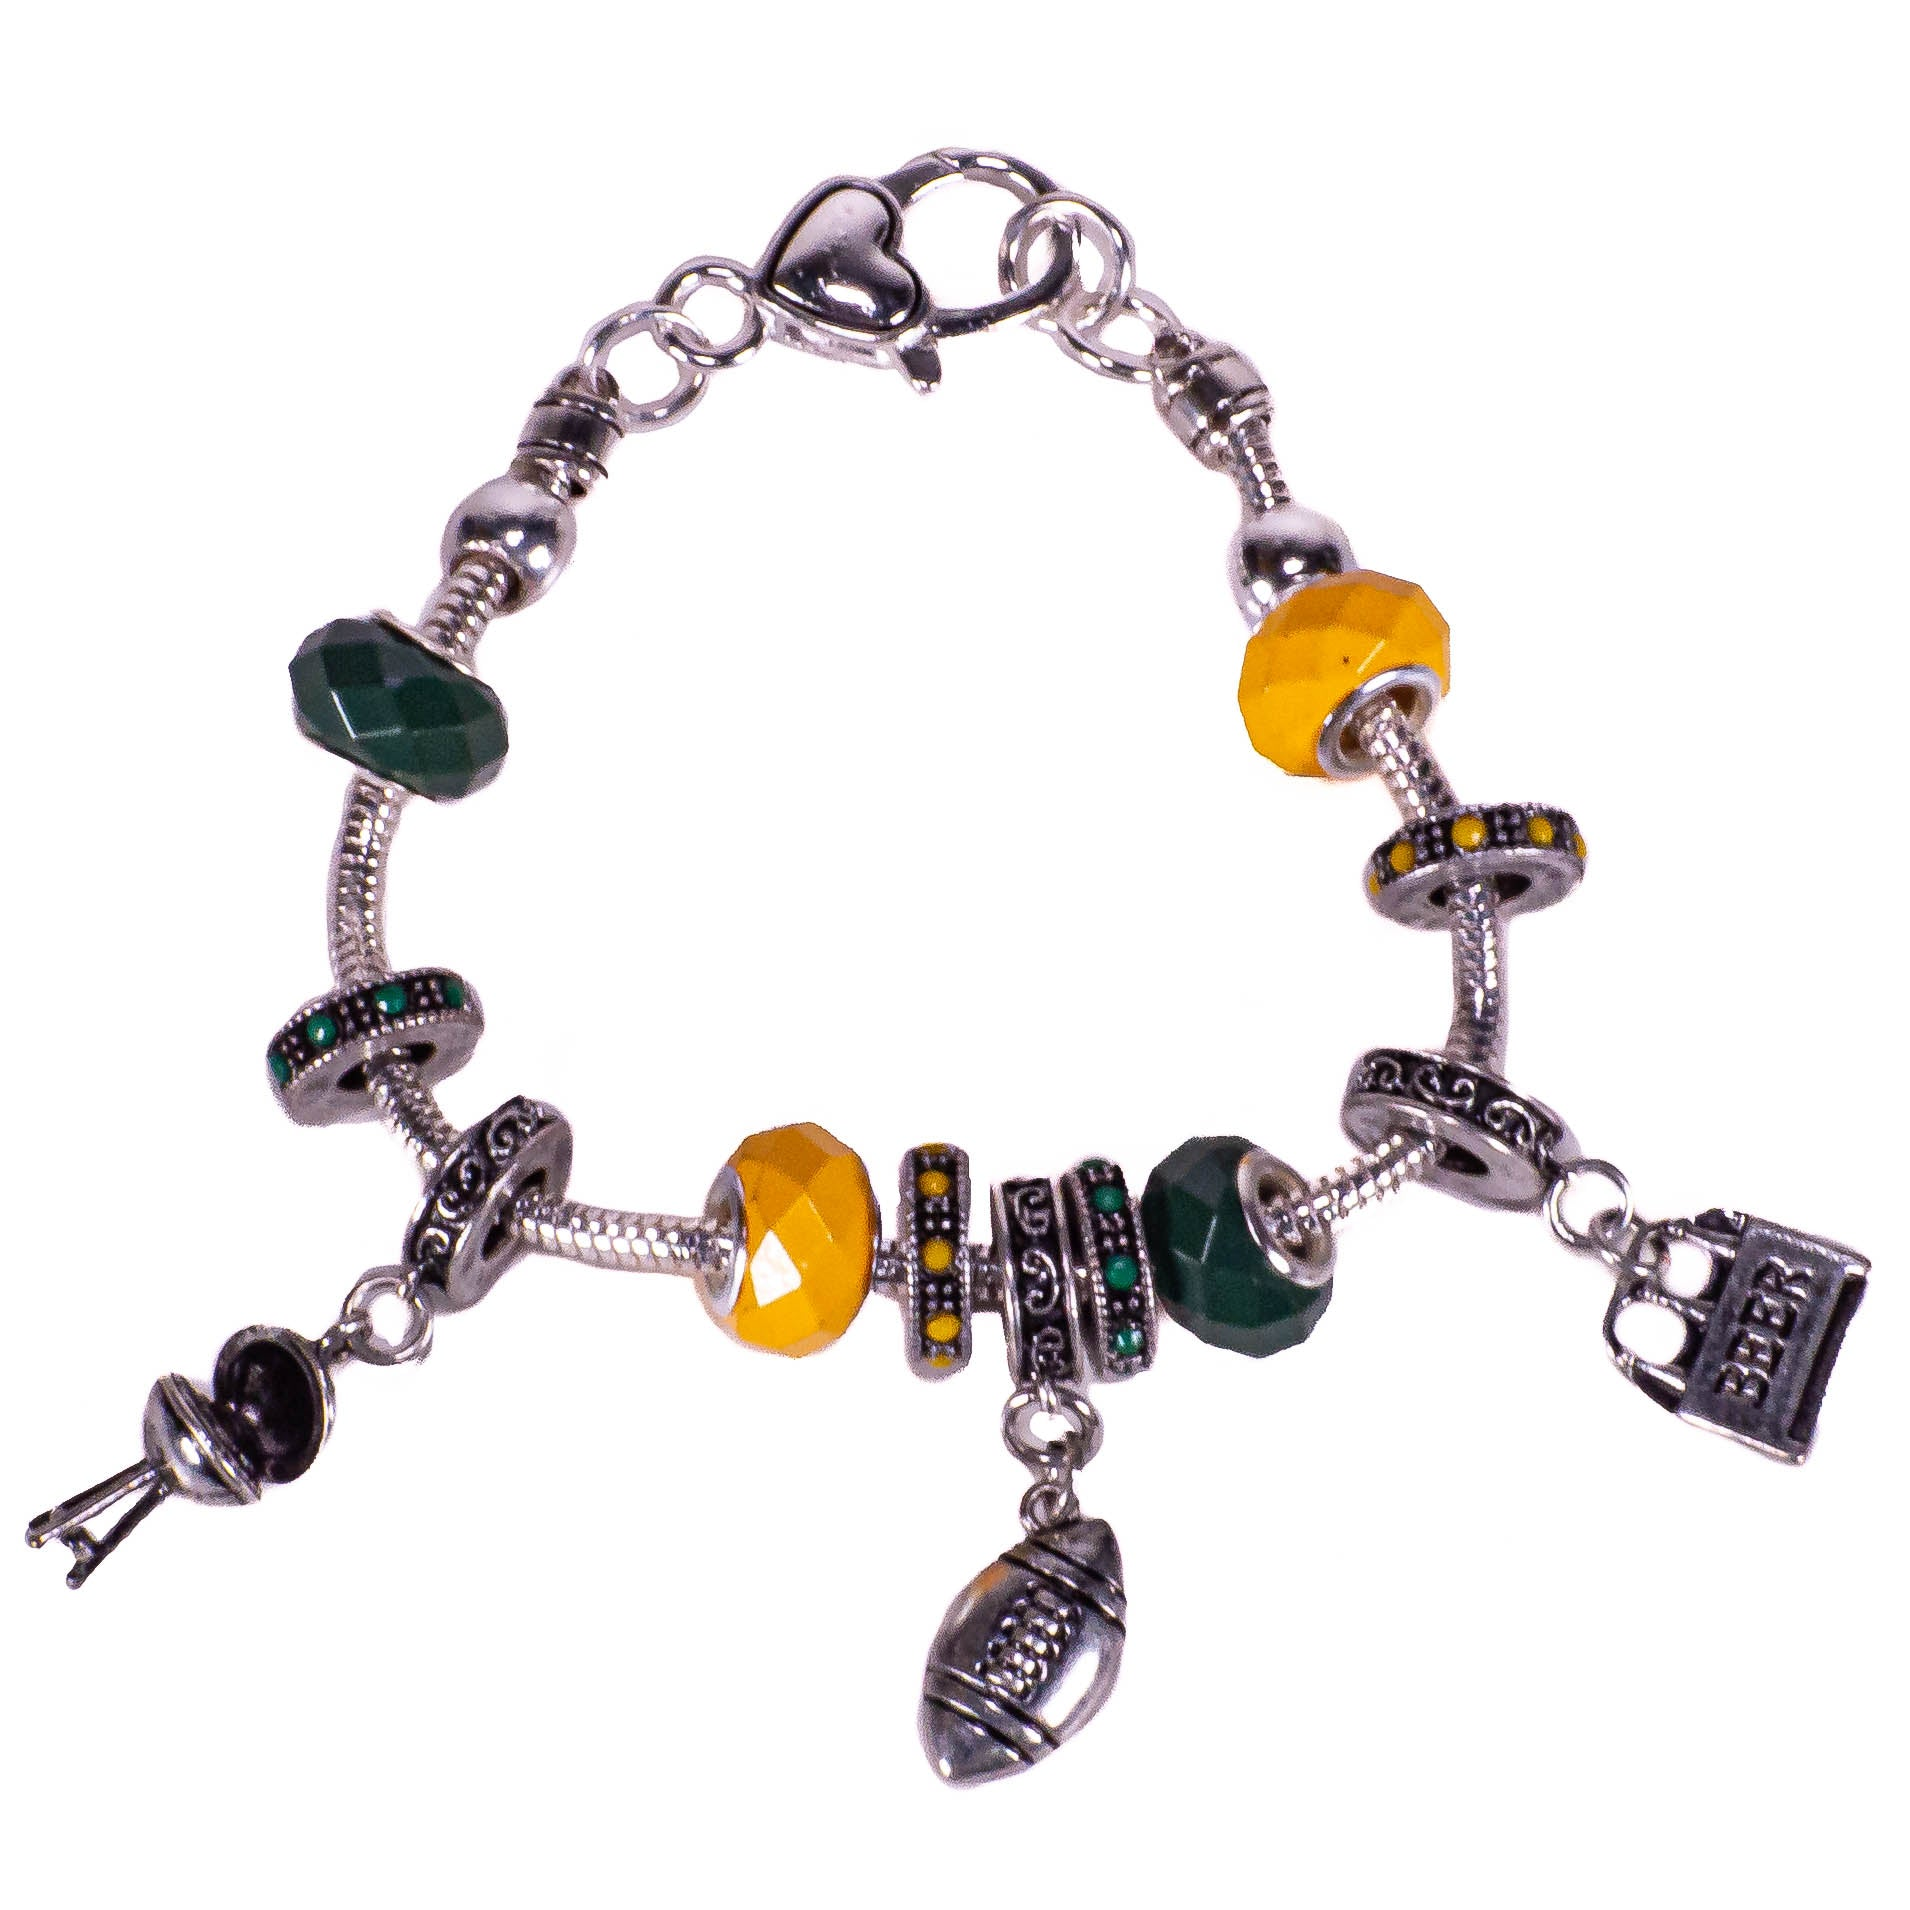 Snake Chain Football Charmable Bracelet